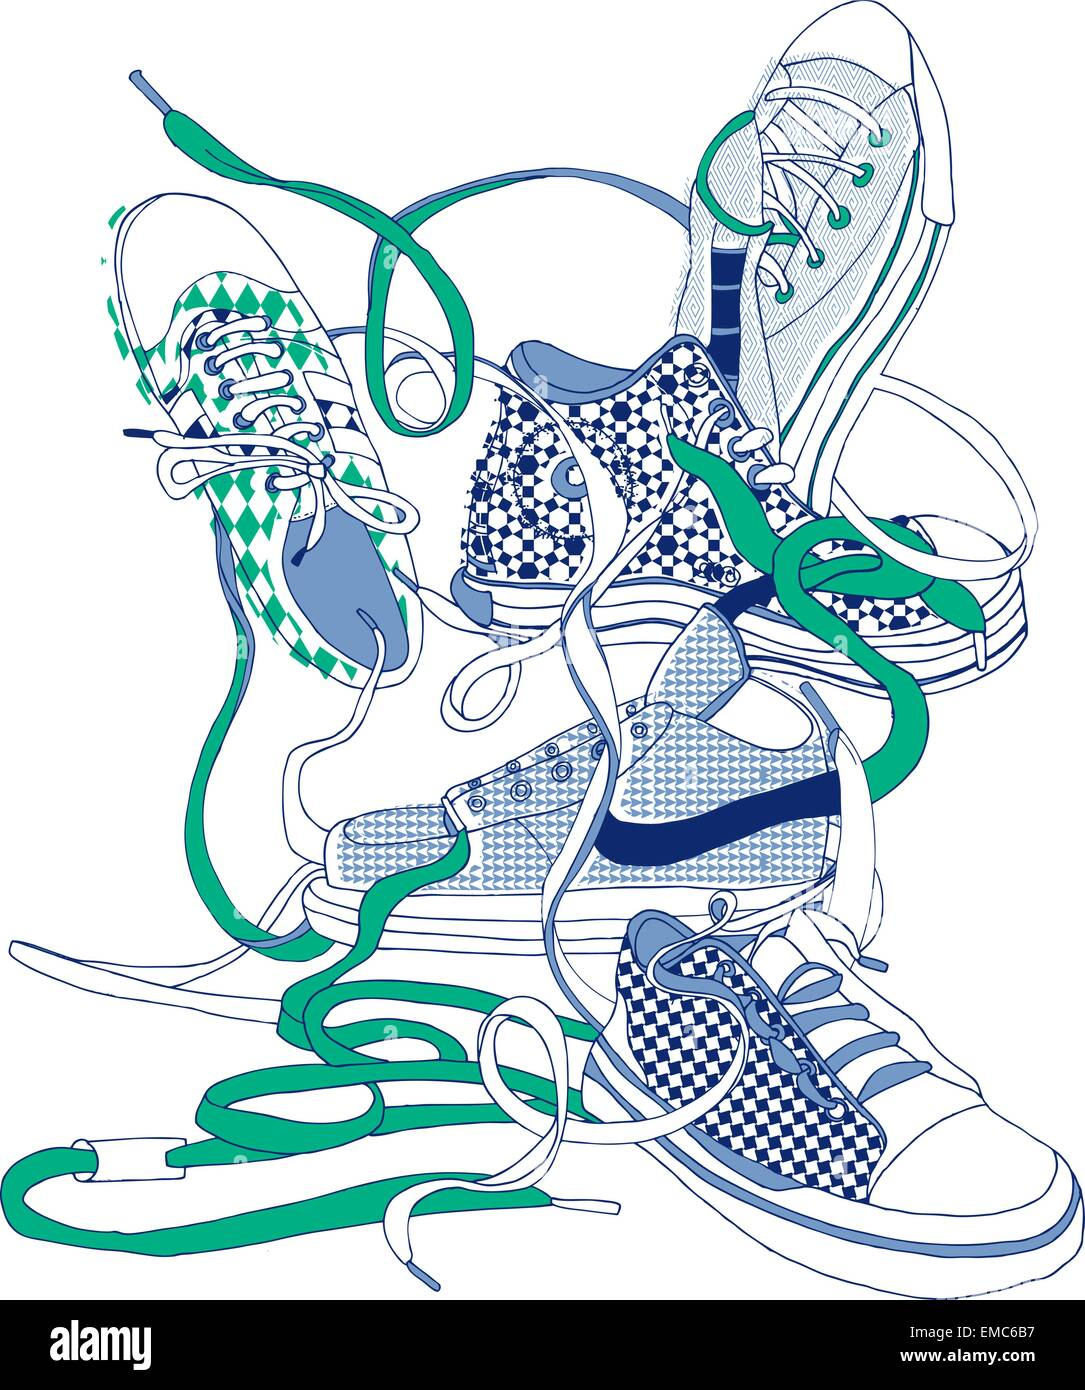 sneakers mess - Stock Image